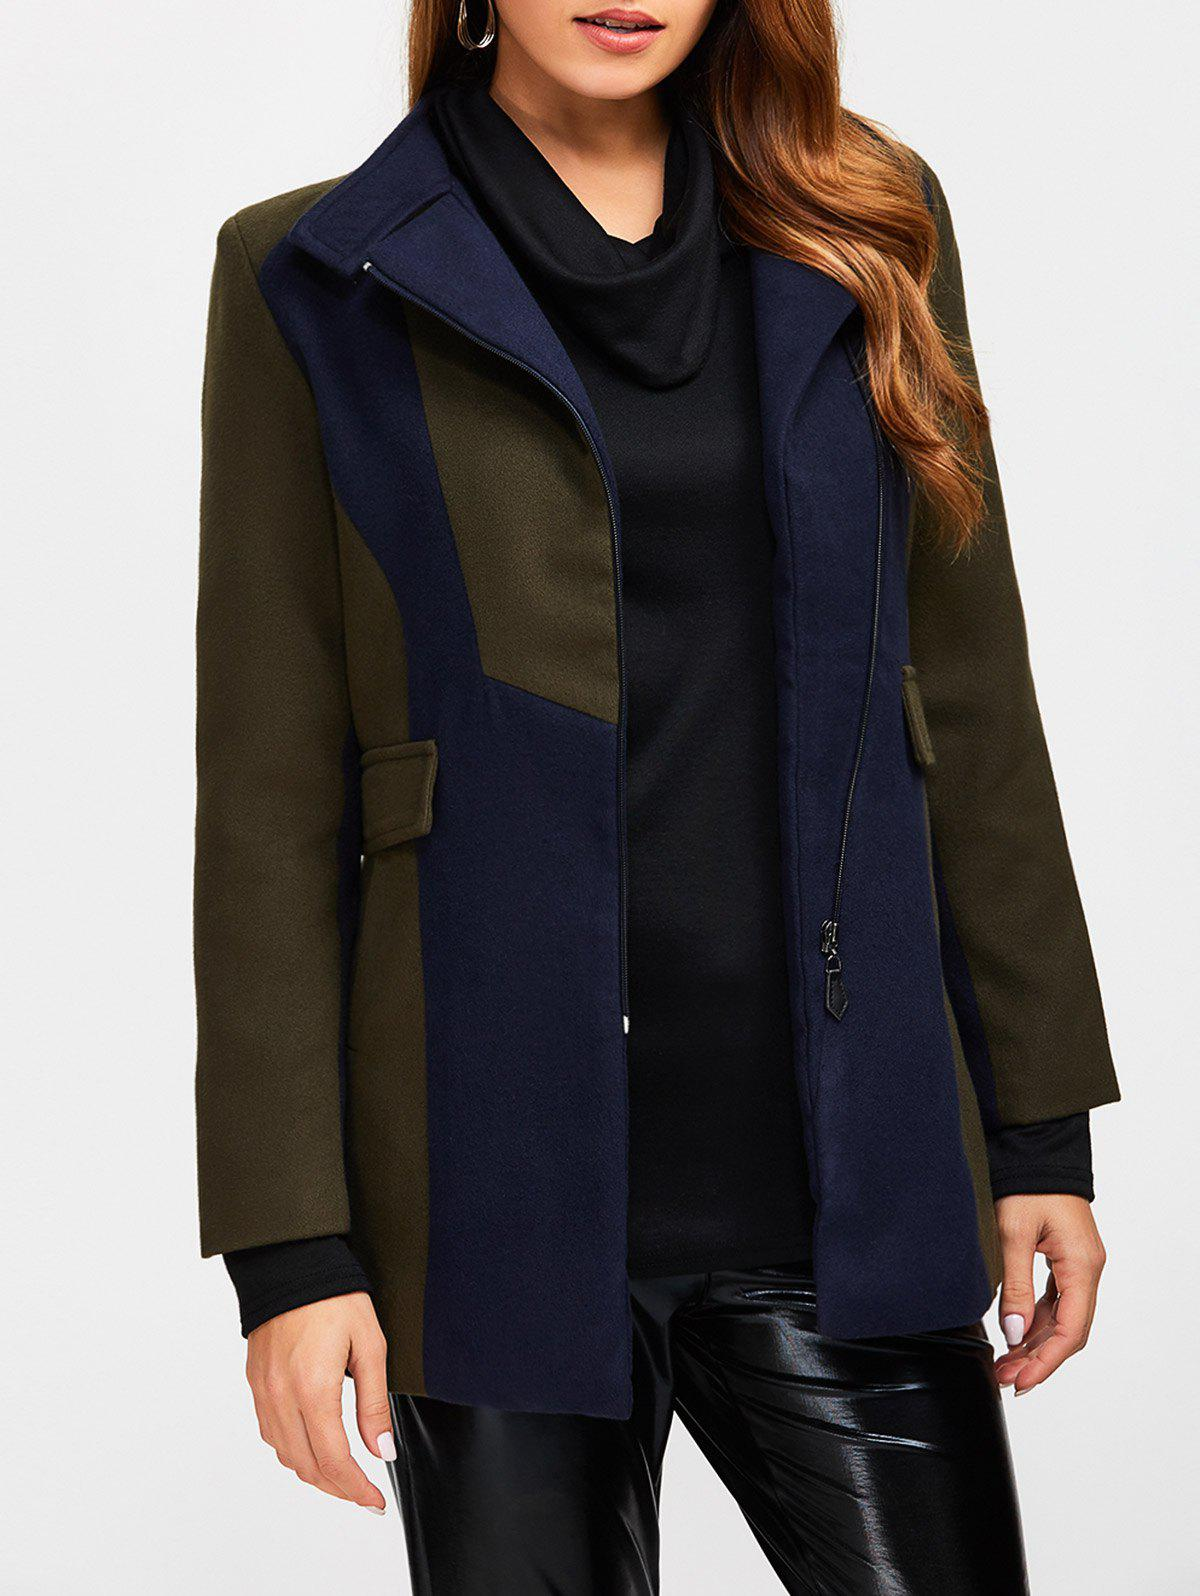 Store Asymmetrical Color Block Wool Blend Coat